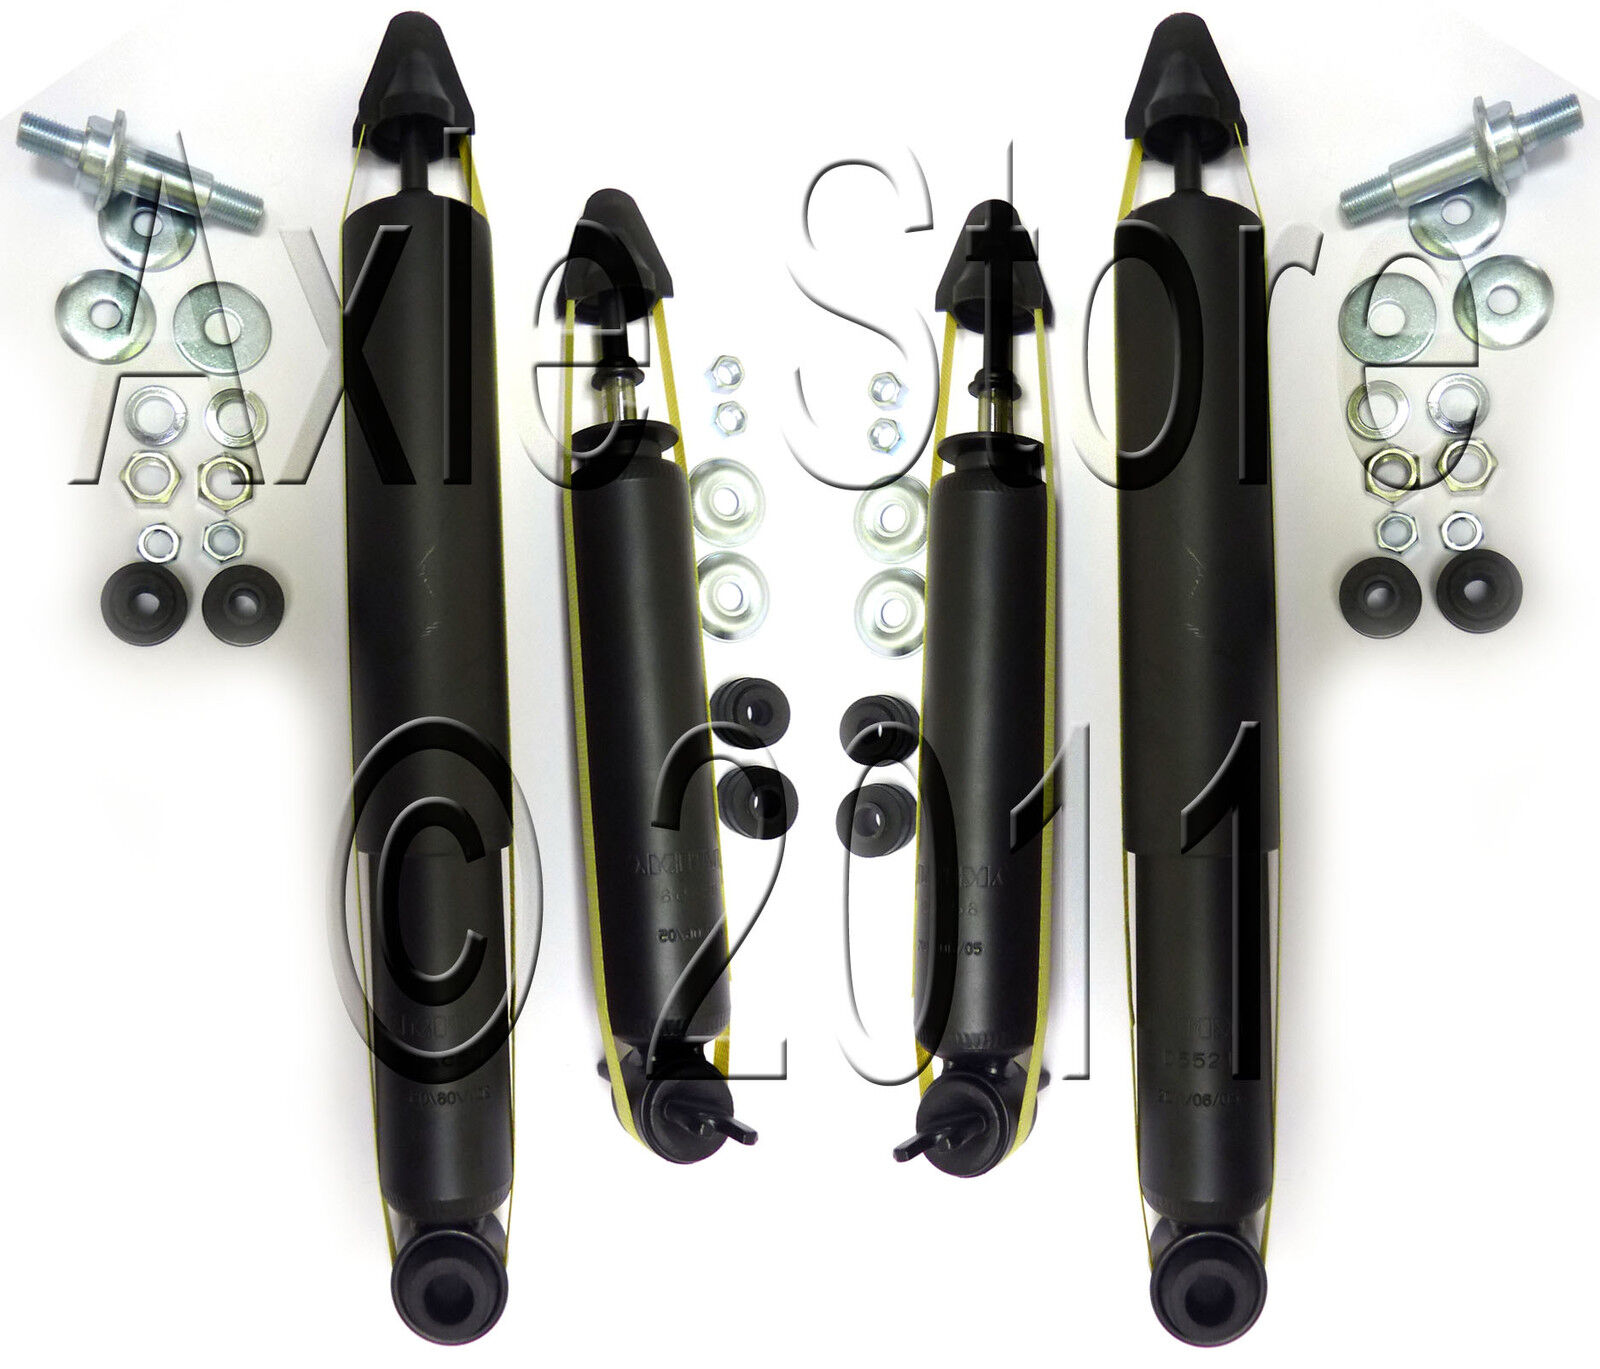 4 Shock Absorbers Strut Assemblies 83-02 Police Car & Taxi, Full Set 40152 on Sale